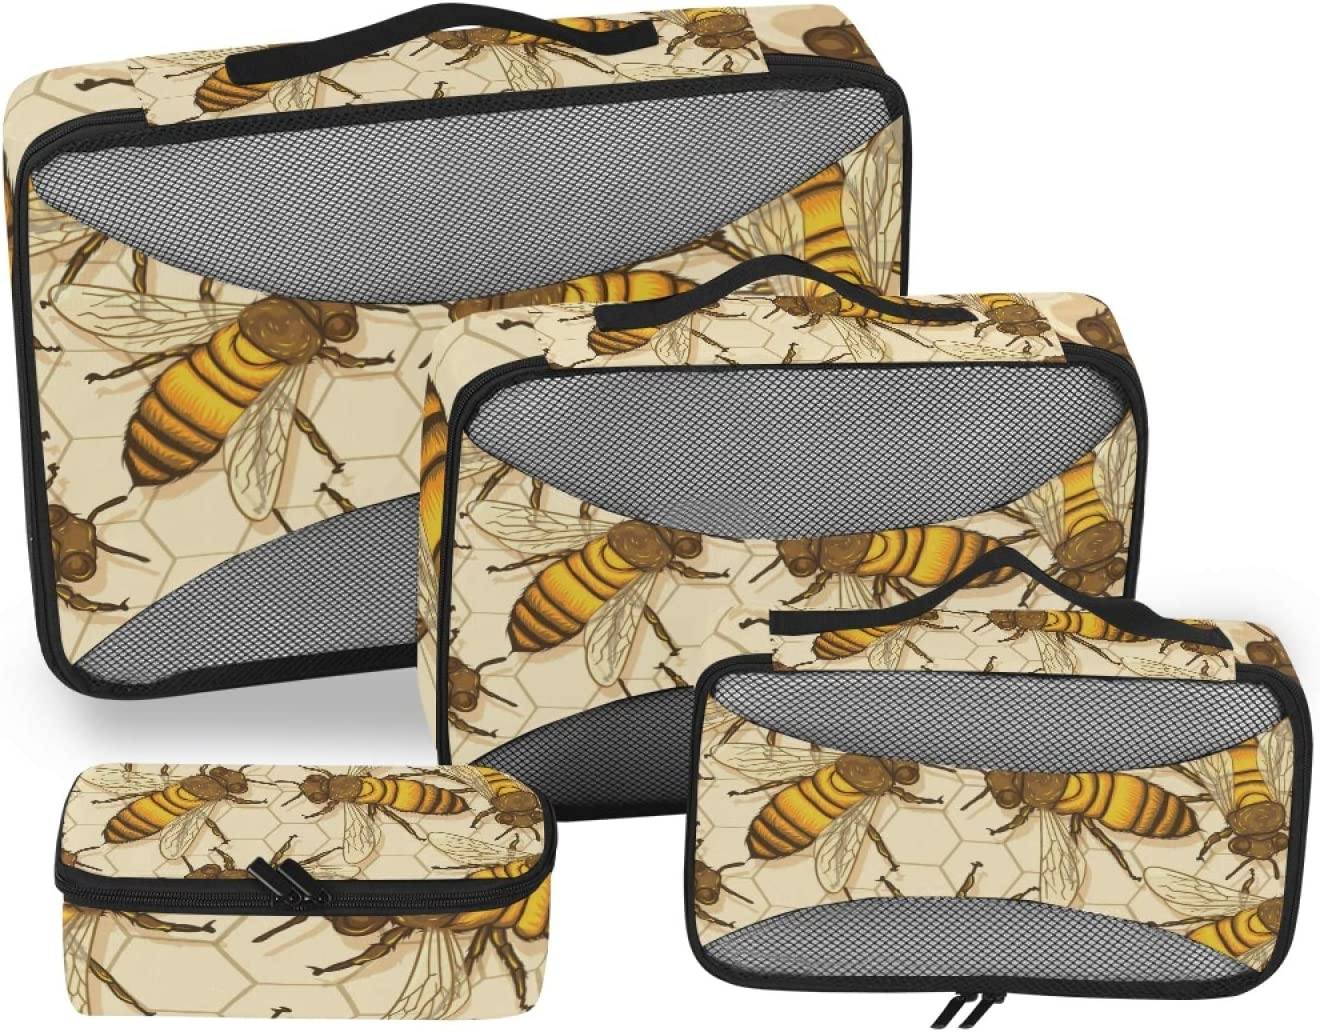 Honey Bees Packing Cubes 4-Pcs Max 88% OFF Stor Organizer Popular products Travel Accessories